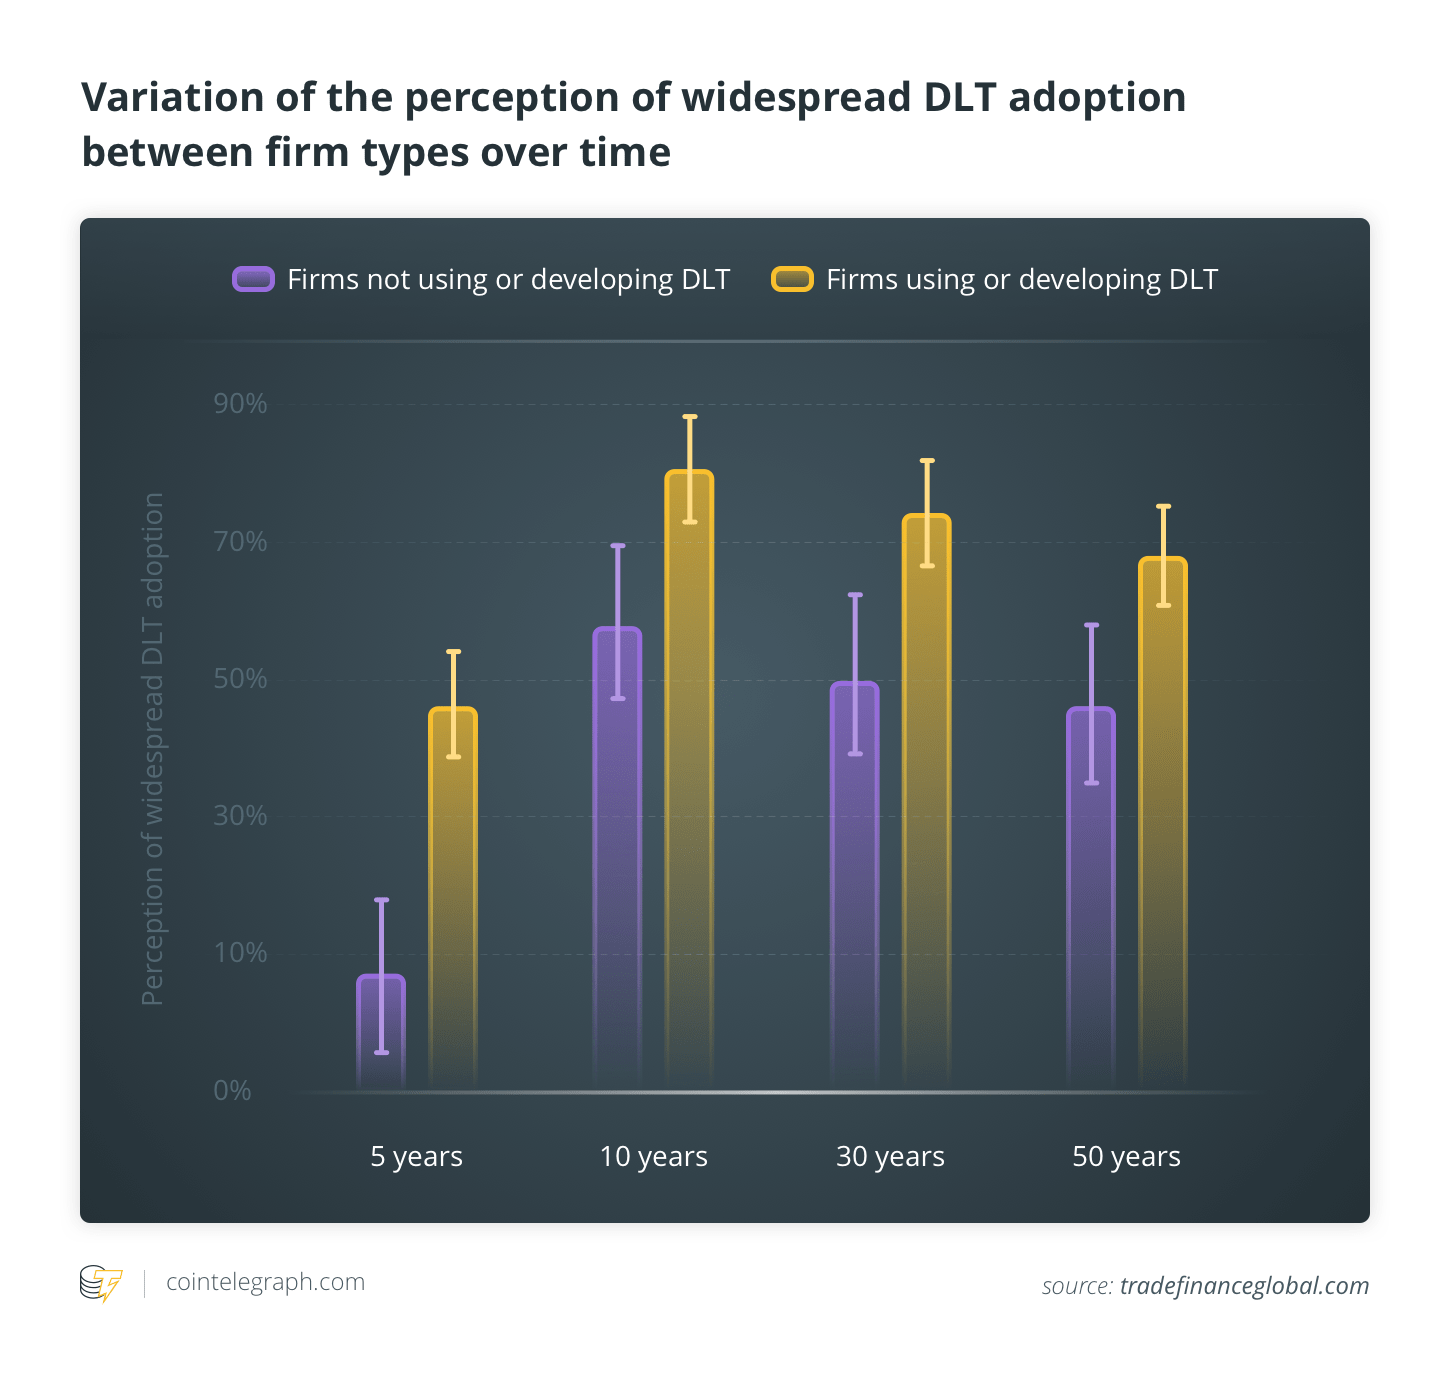 Variation of the perception of widespread DLT adoption between firm types over time